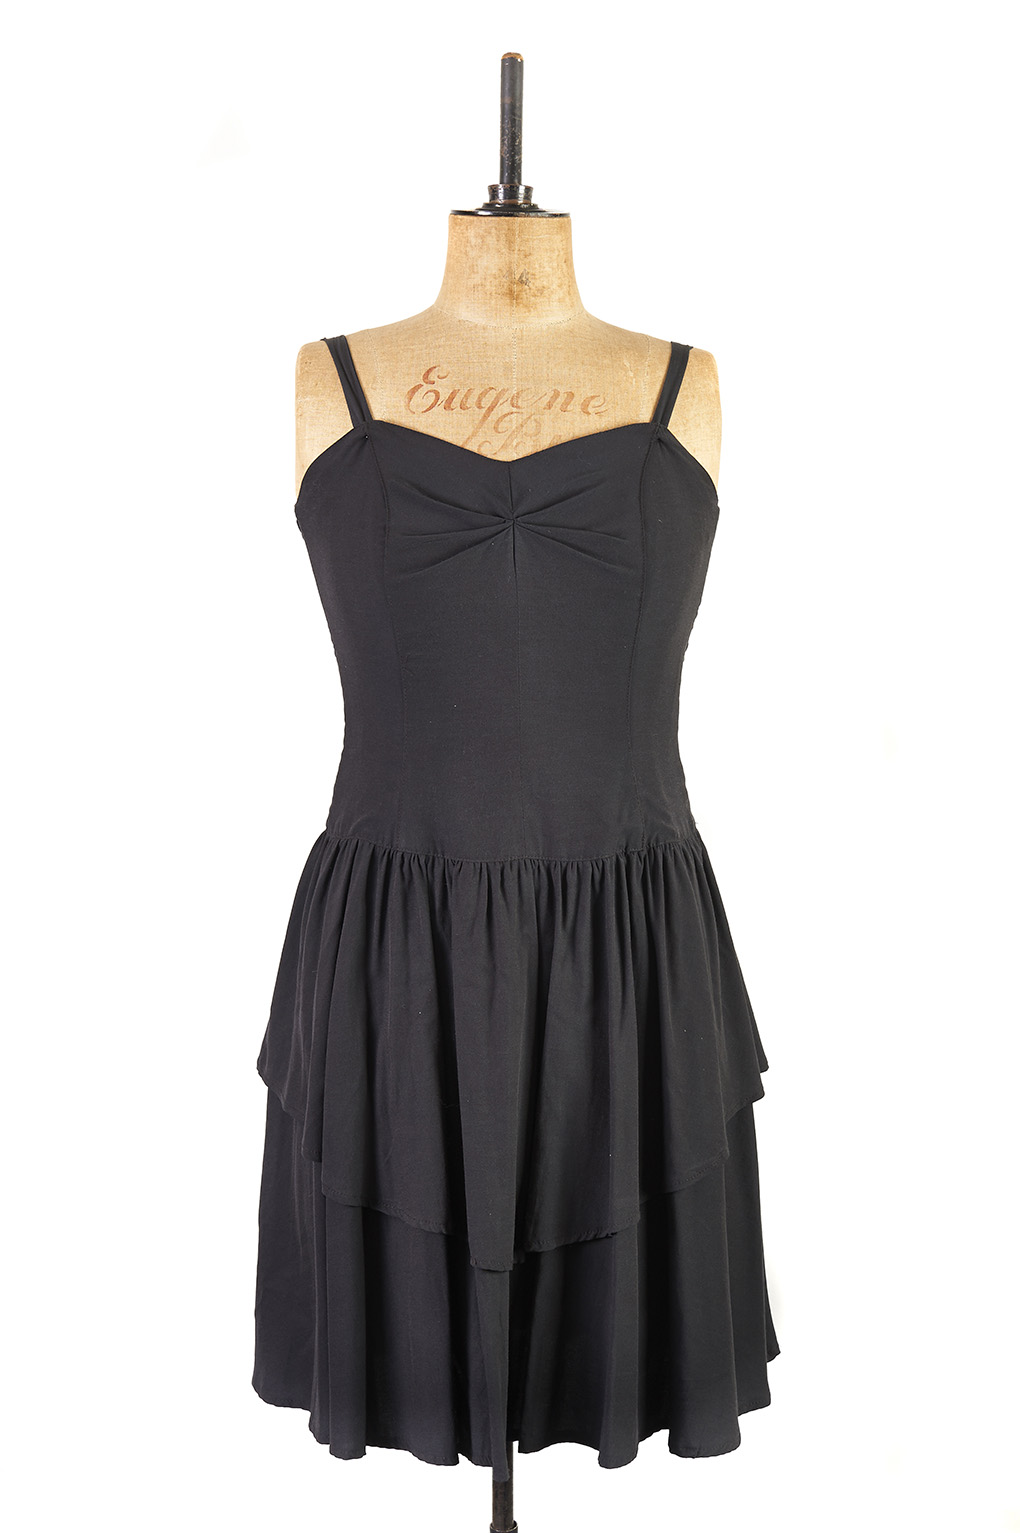 Black Cocktail Dress c.1980s - Size 14